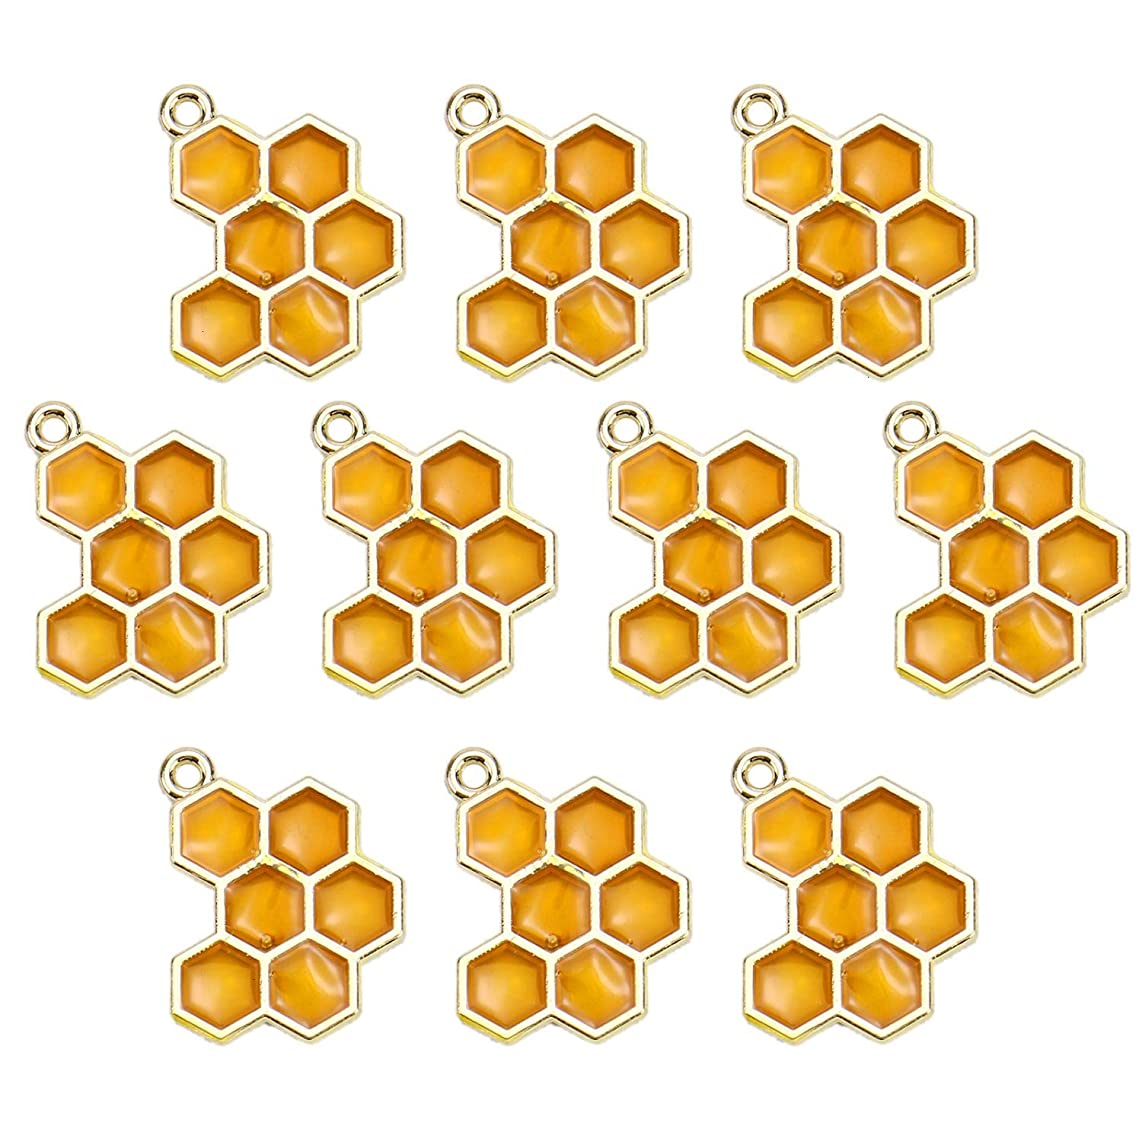 Monrocco 10pcs Enamel Honey Bee Charms Honeycomb Charm for Jewelry Making Bracelets DIY 20x15mm